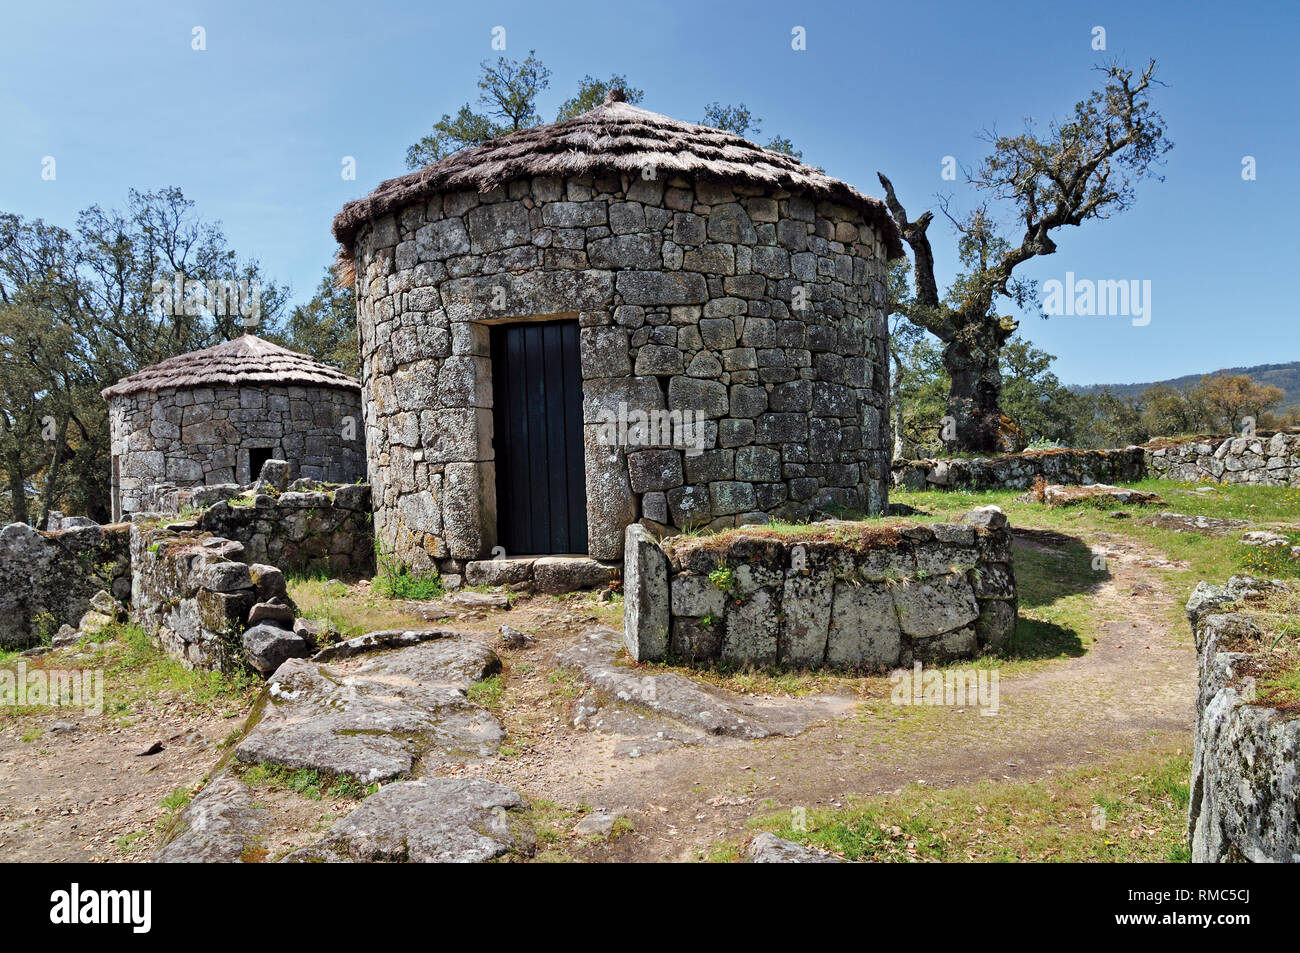 Reconstructed  castro stone houses of former celtic settlement Citania de Briteiros - Stock Image